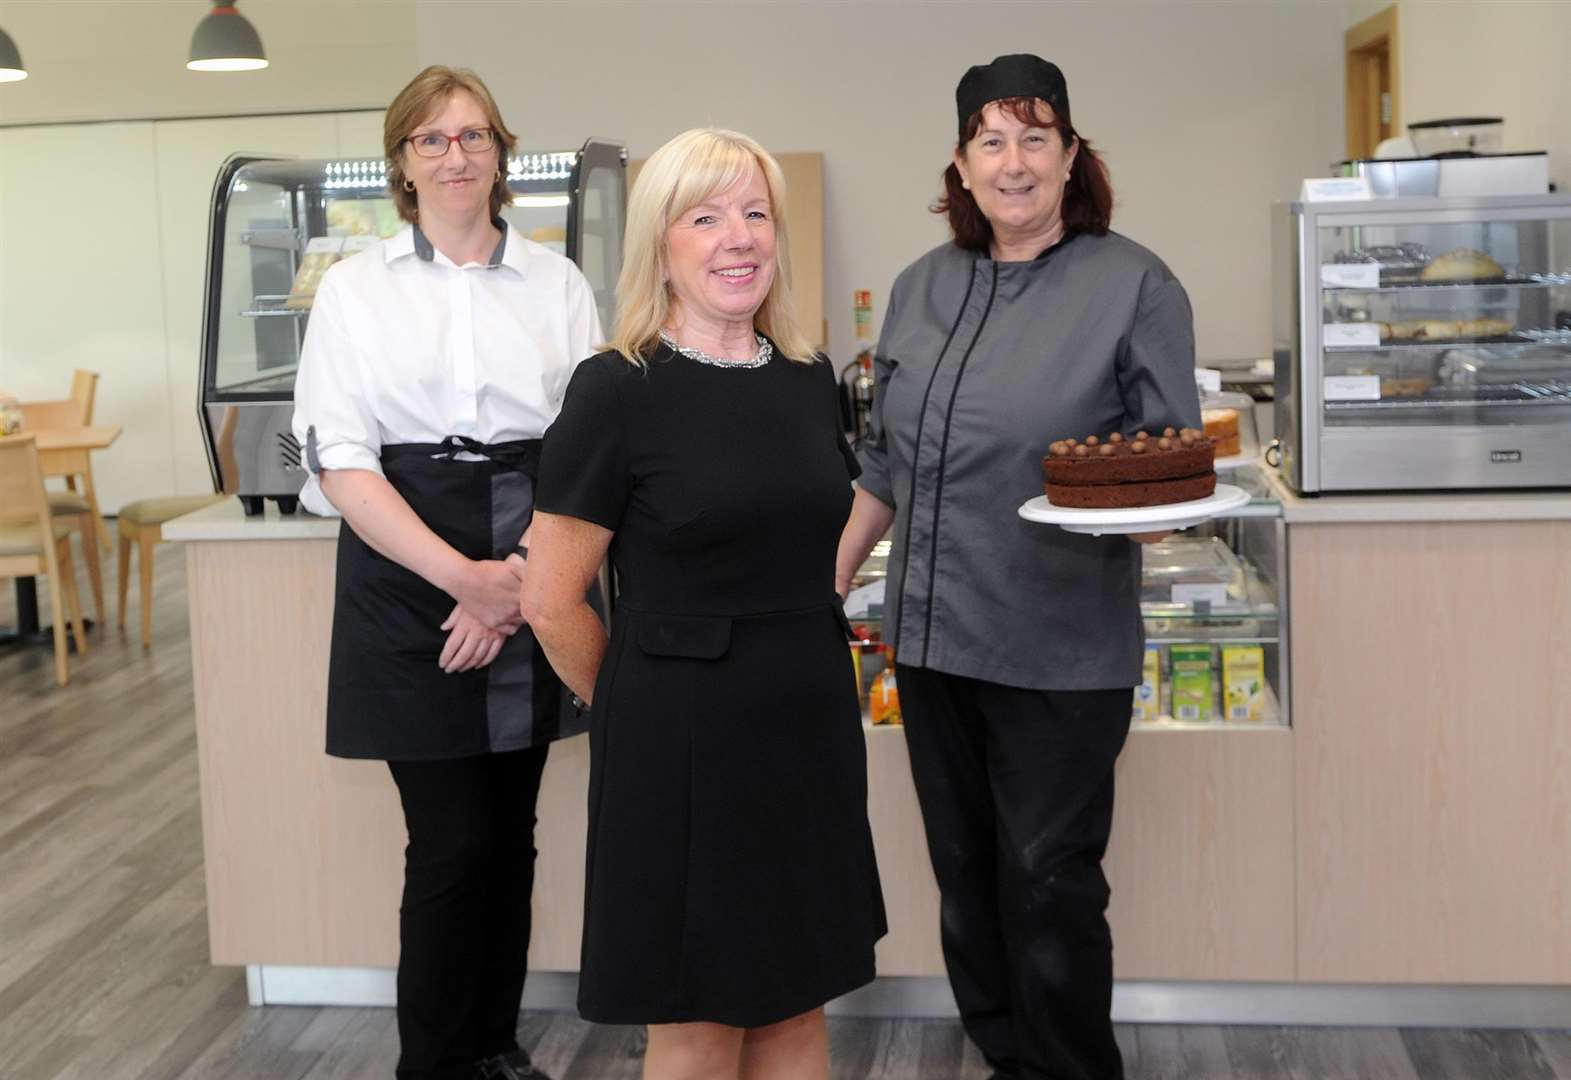 All welcome as crematorium opens café and hospitality suite